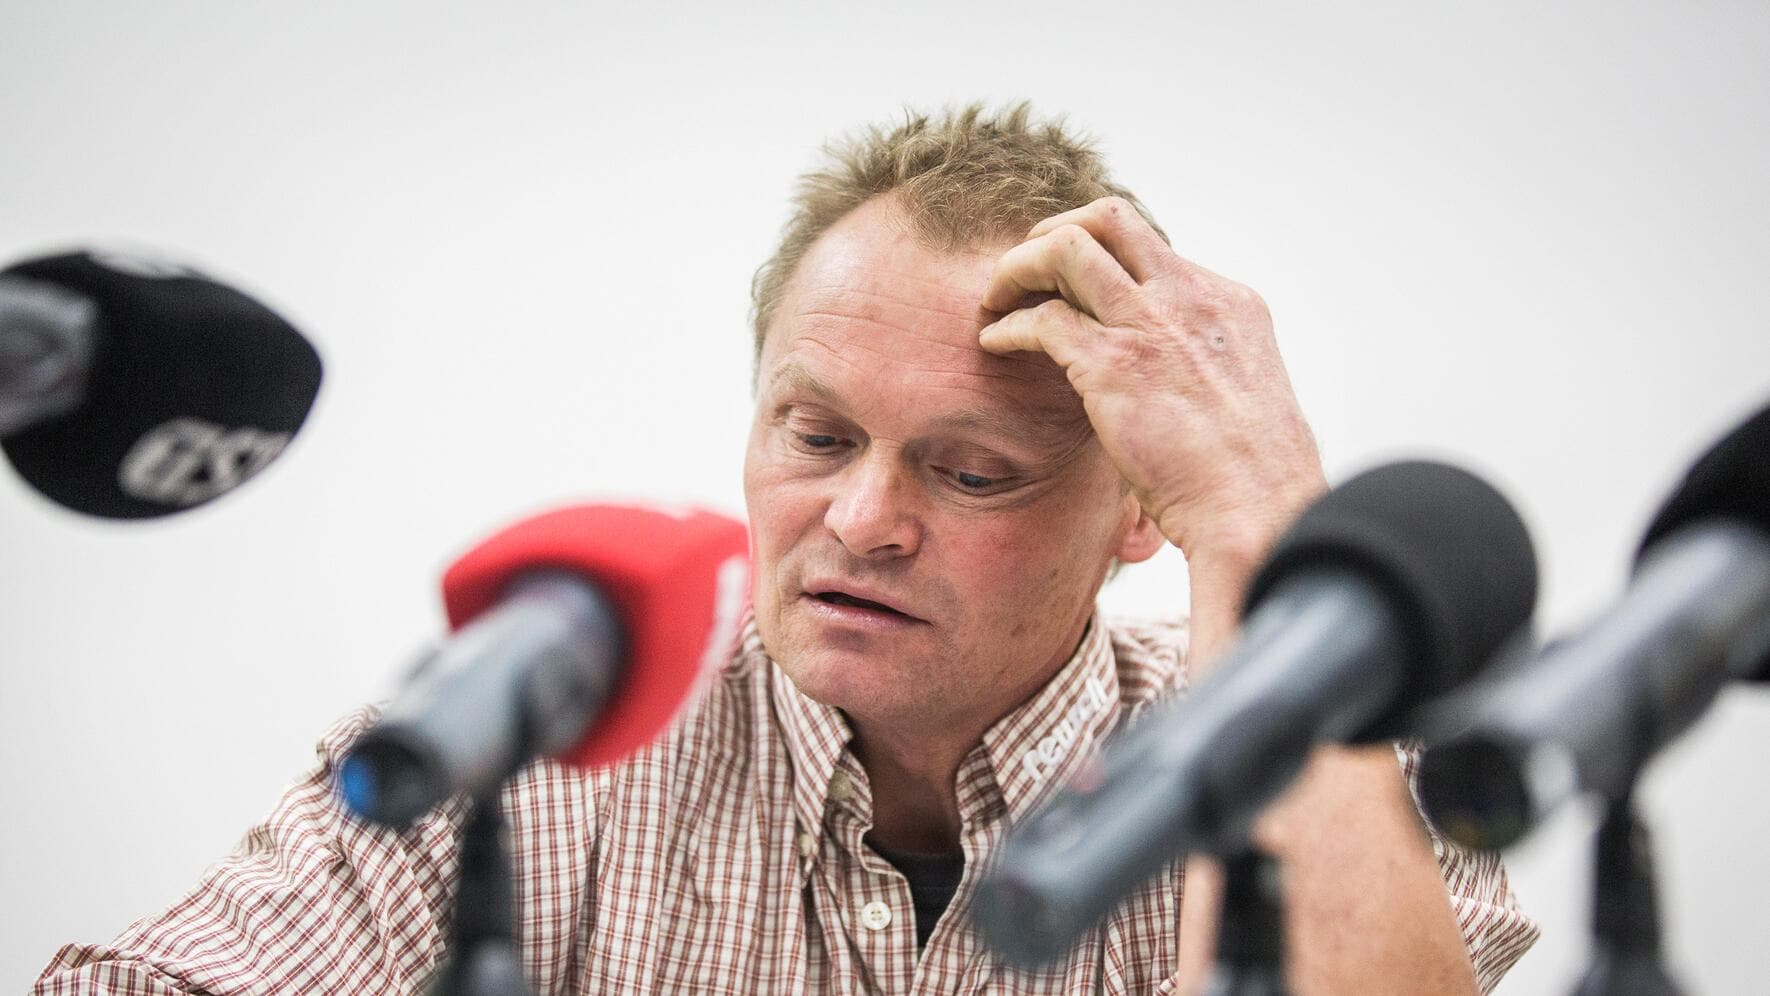 Paul Accola Unfall Tod Junge Pressekonferenz